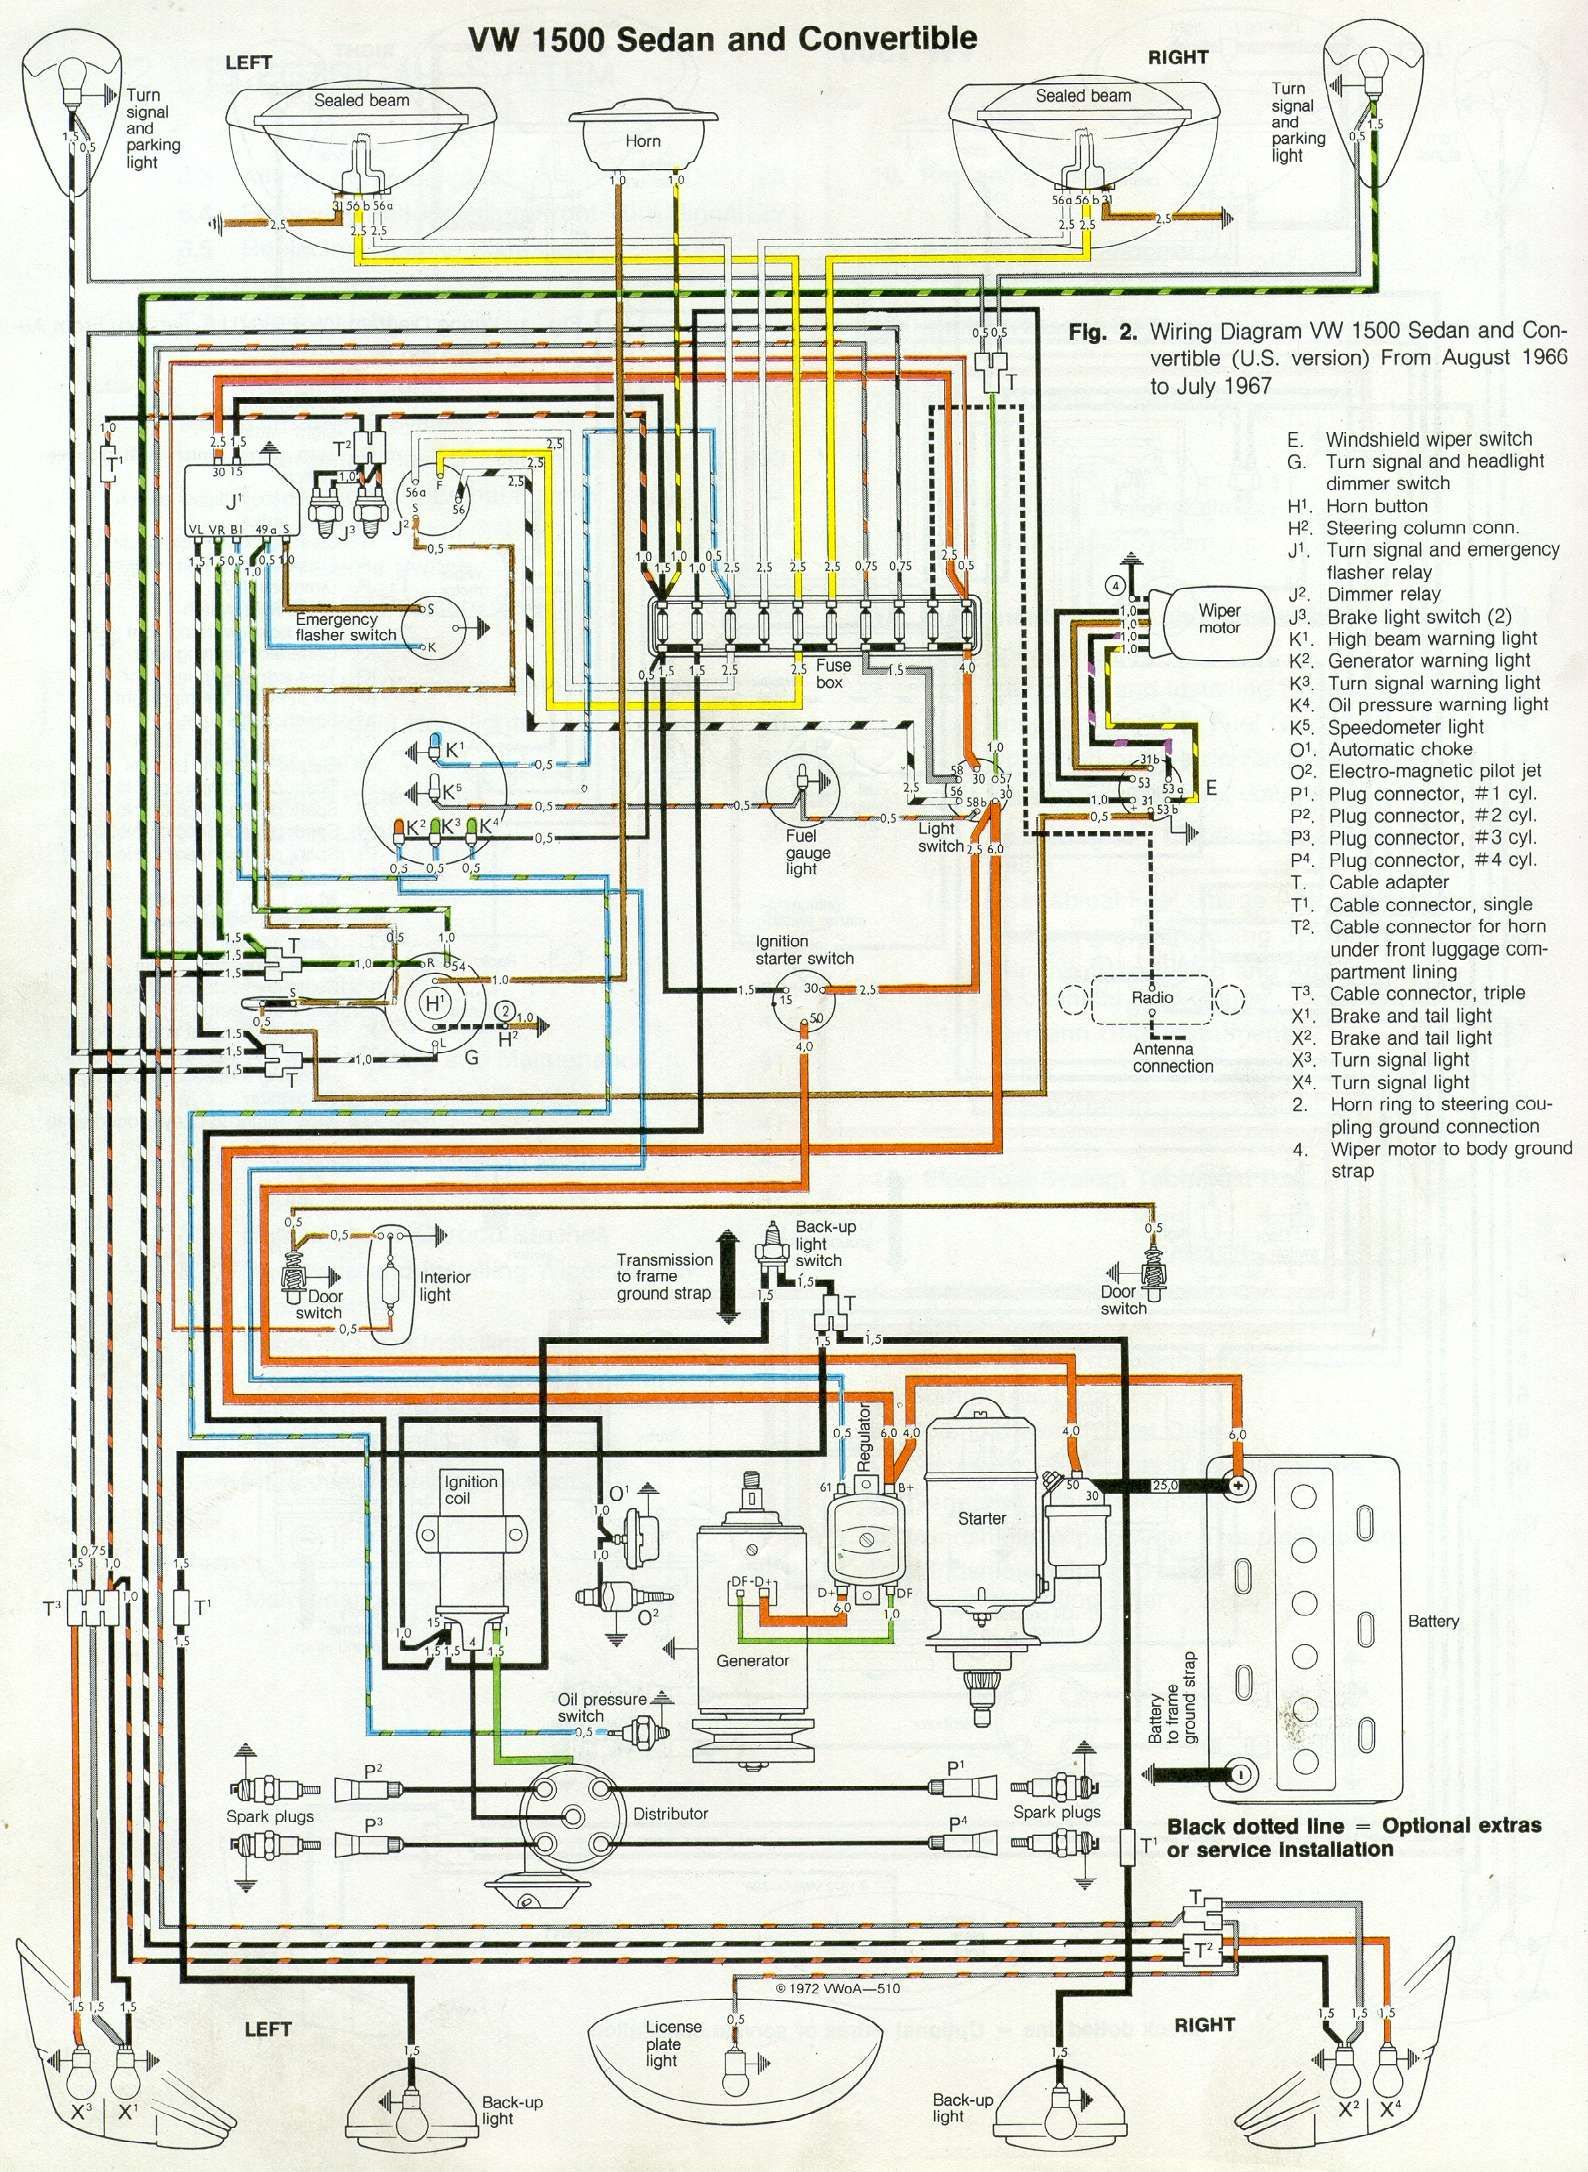 Thesamba Com Type 1 Wiring Diagrams And 1969 Vw Beetle Diagram Volkswagen Kevers Vw Kevers Kever